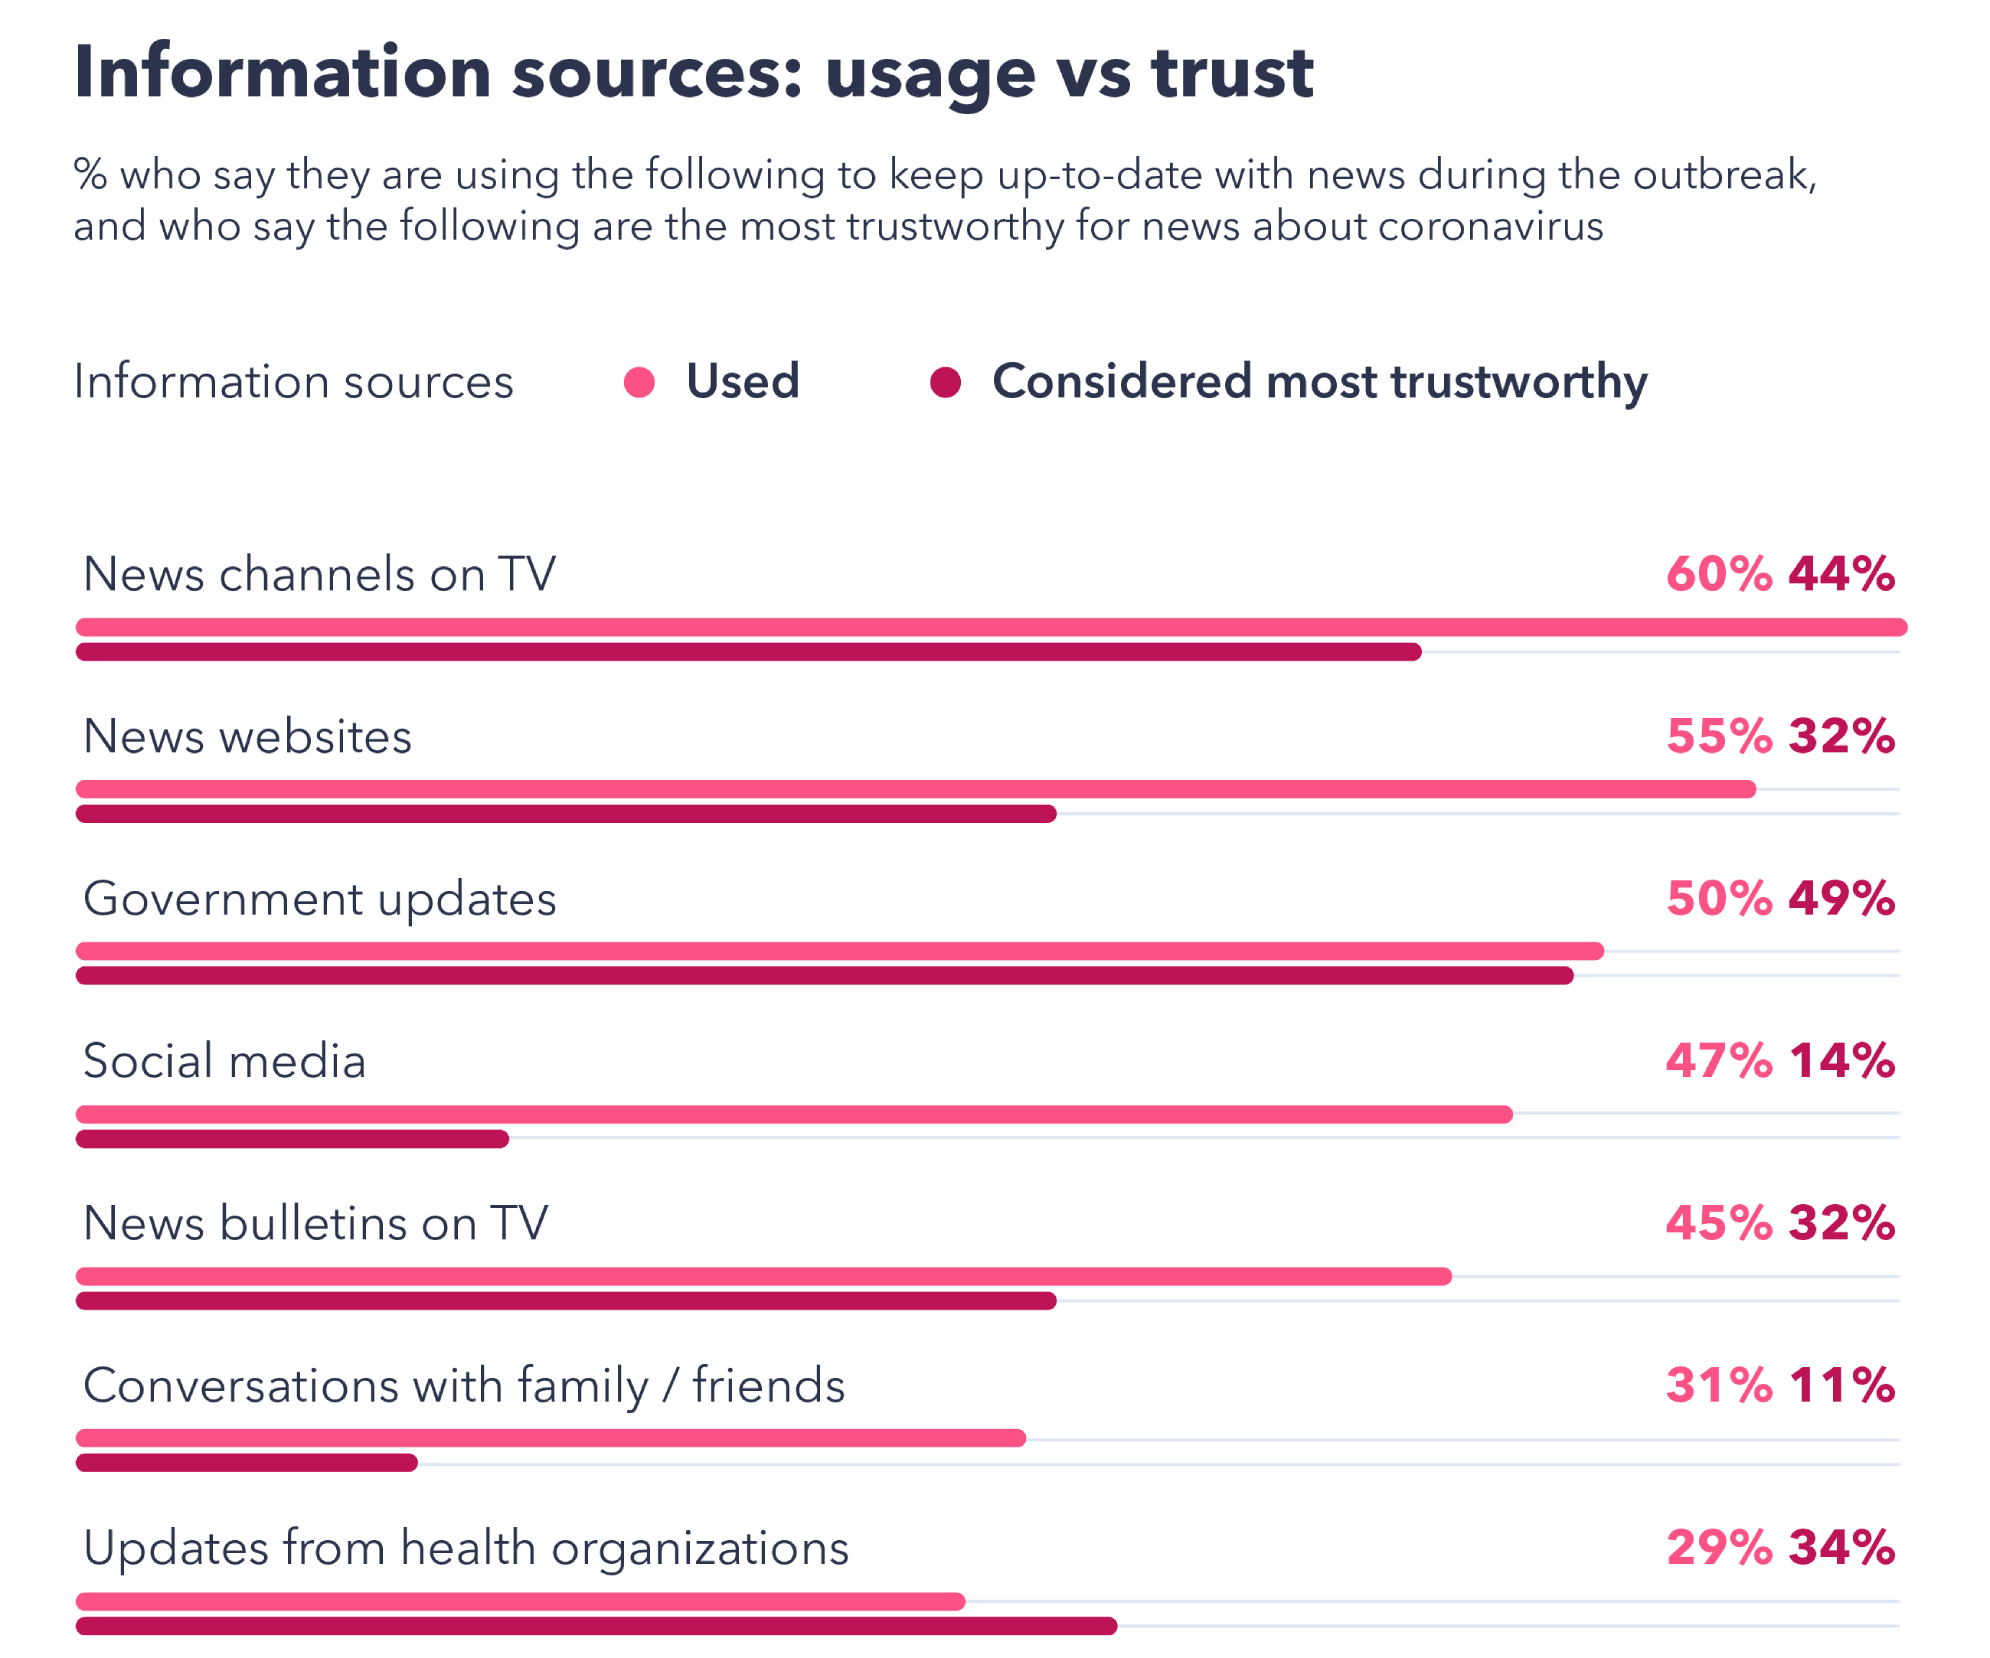 News channels and government updates are the most trusted sources of information, with social media lagging behind